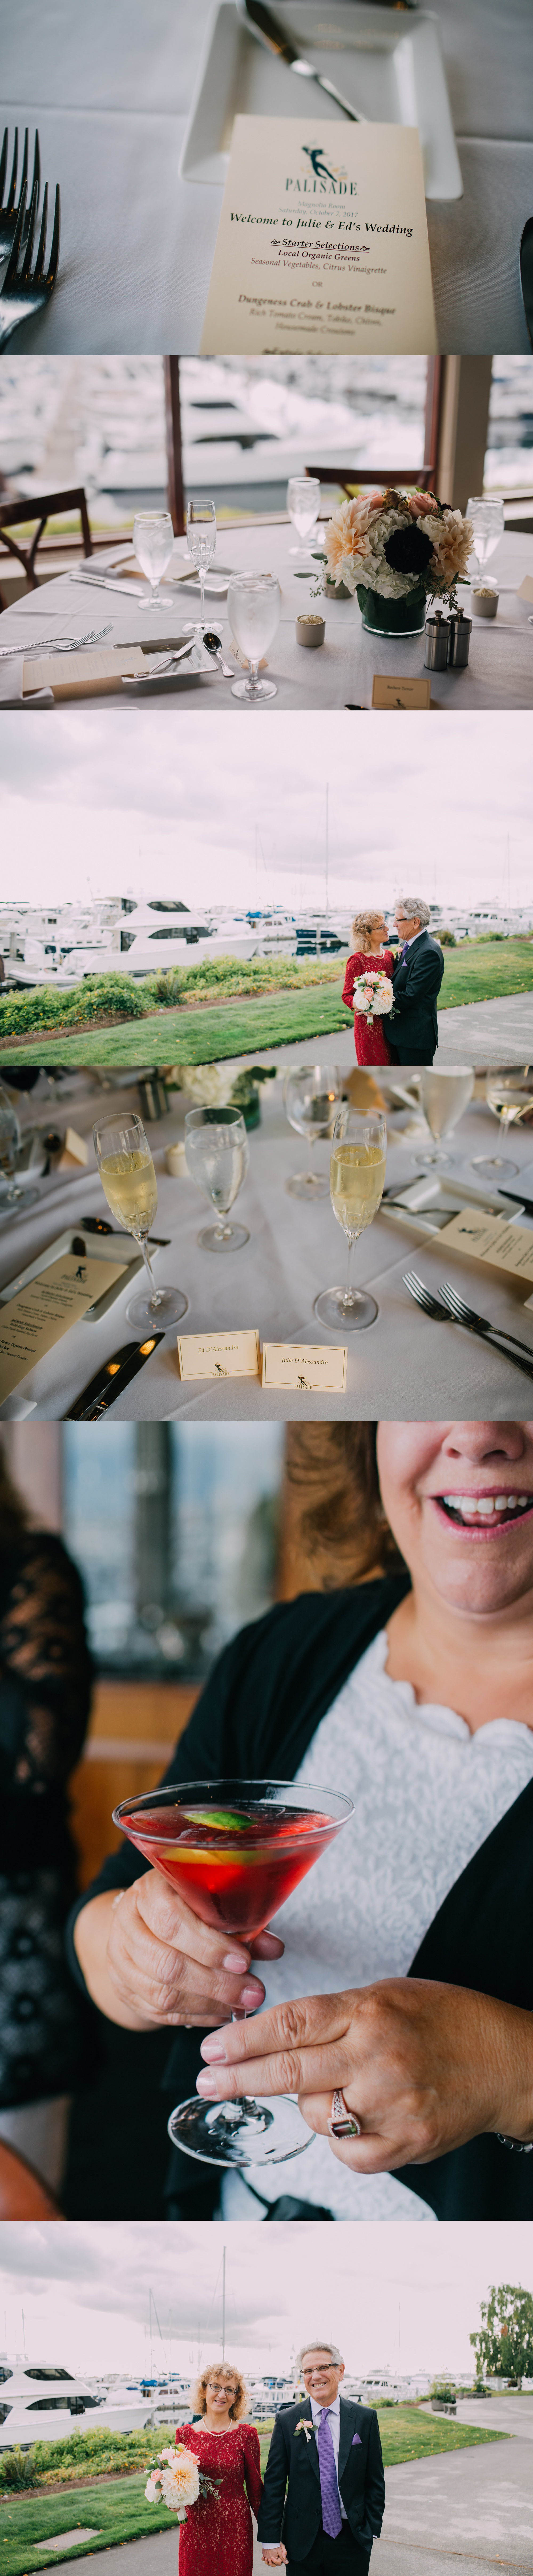 intimate small wedding photographer seattle washington pnw restaurant reception -1.jpg